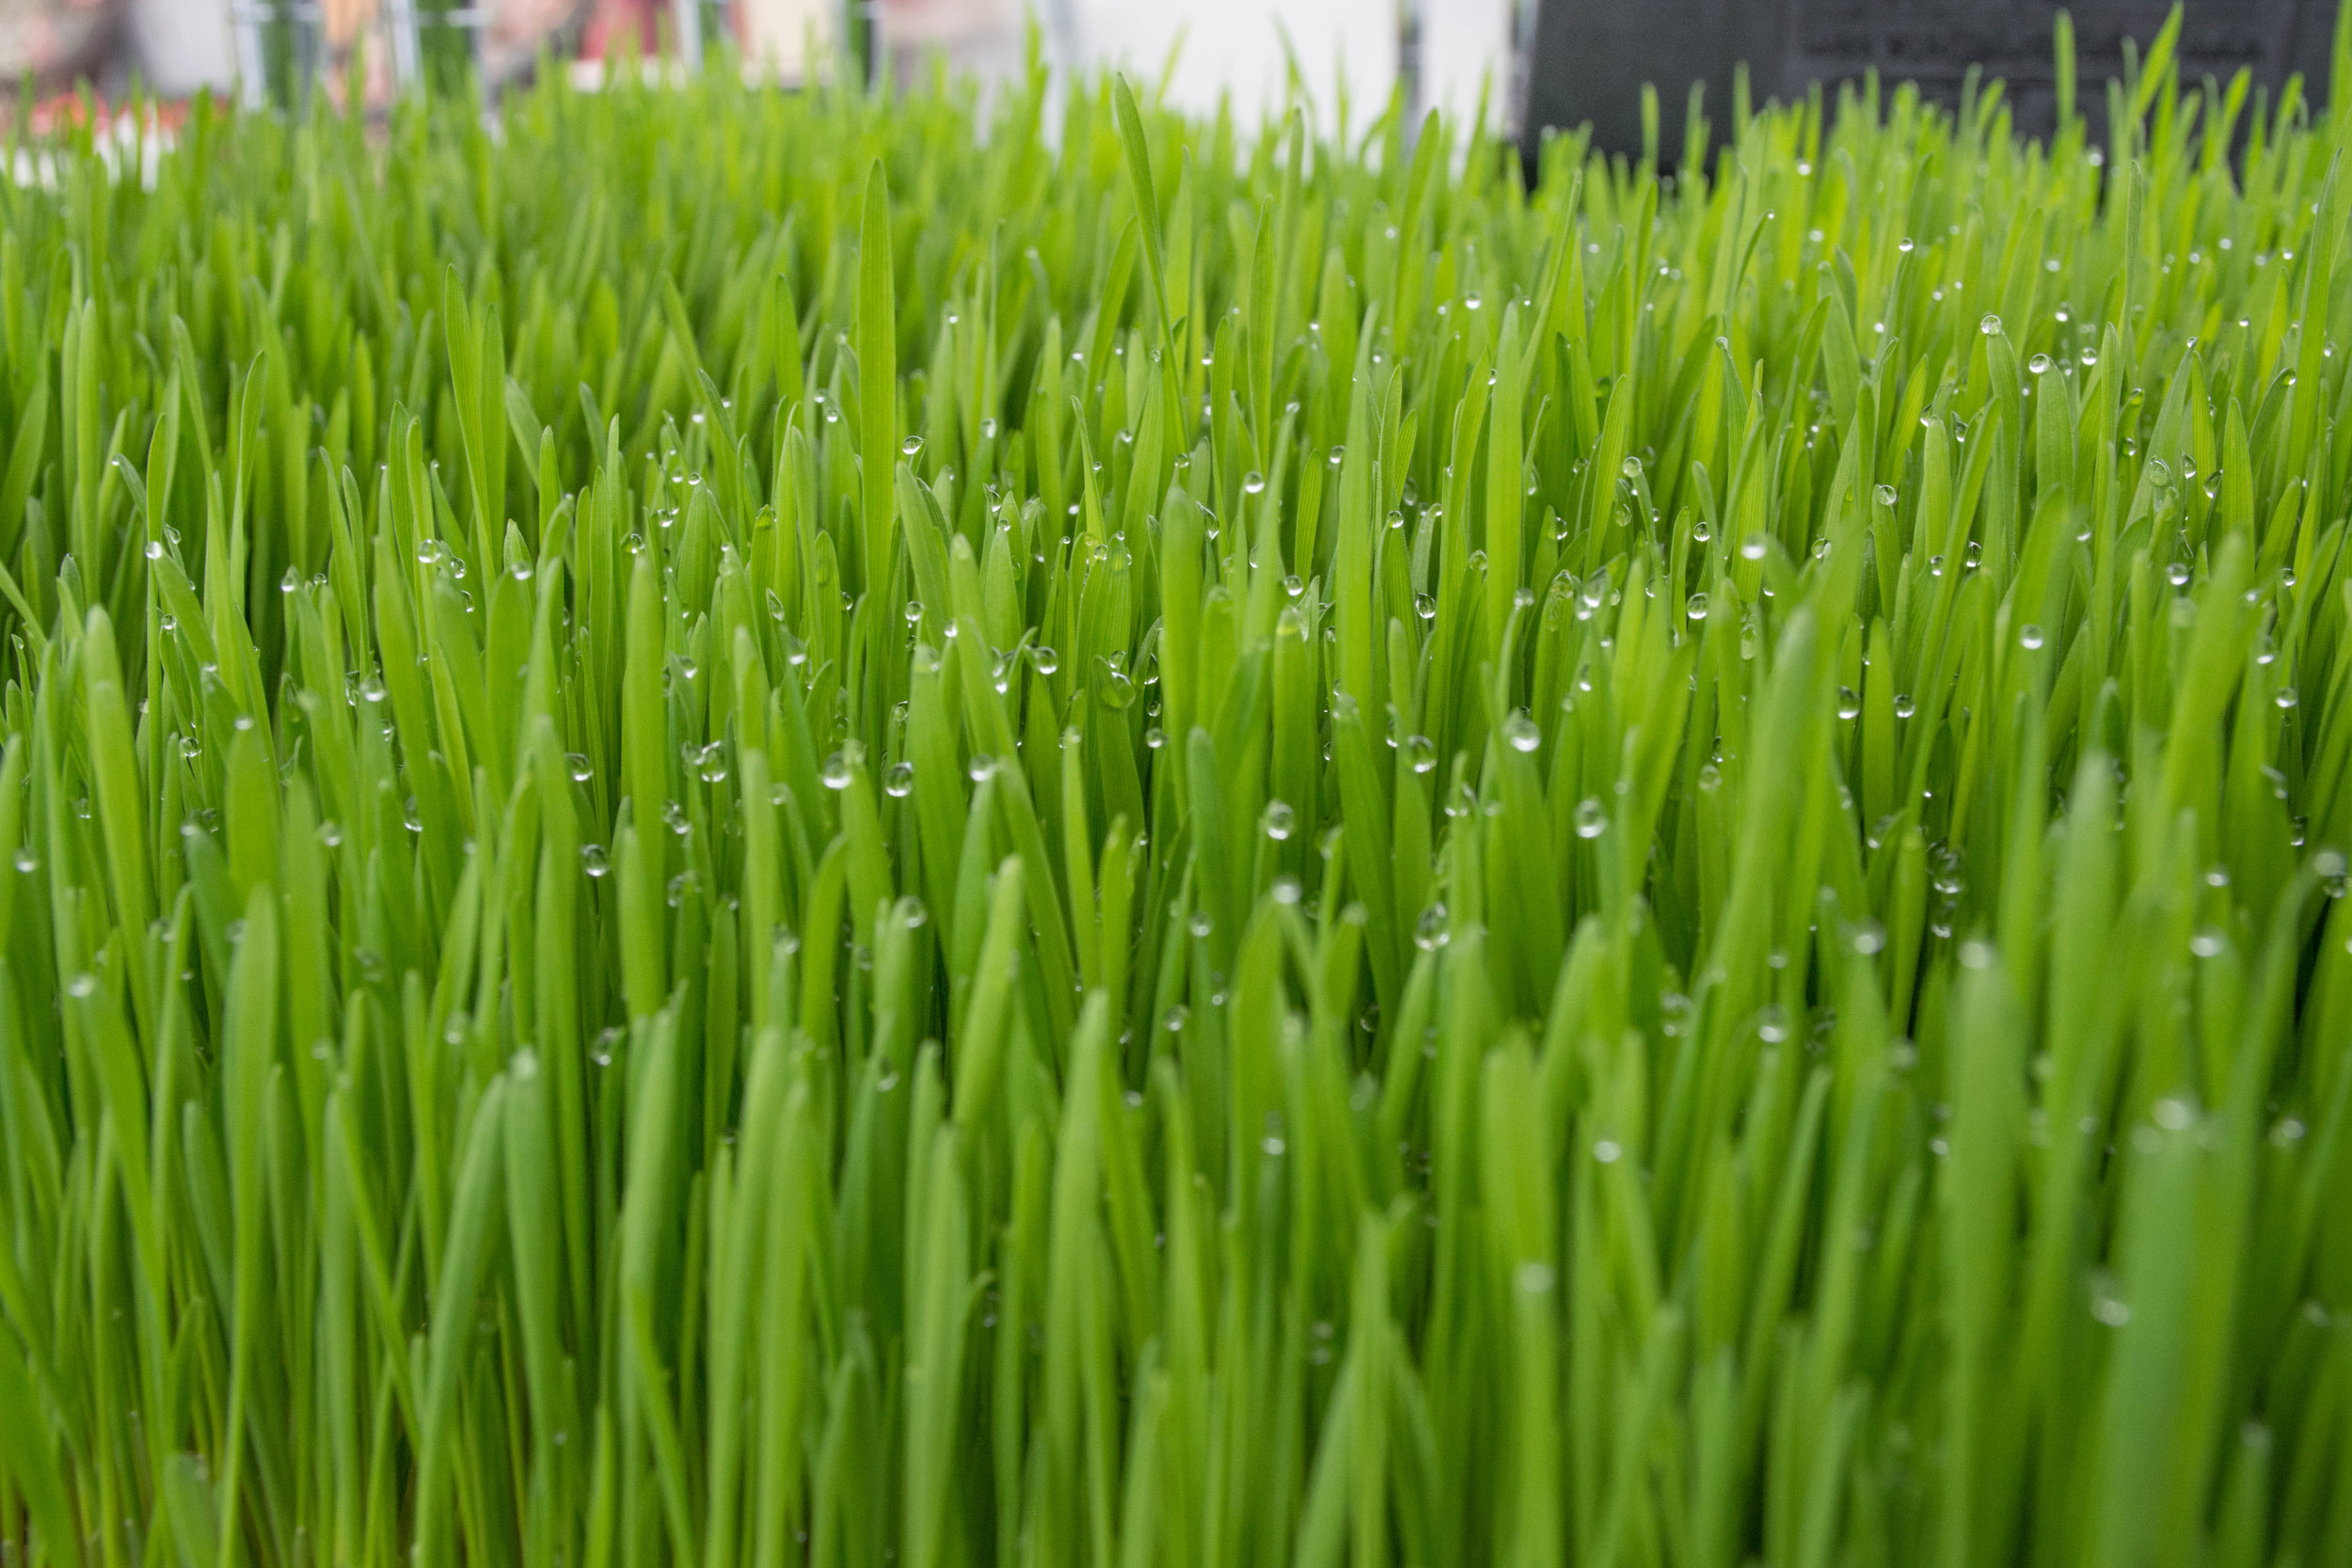 Just-watered wheatgrass